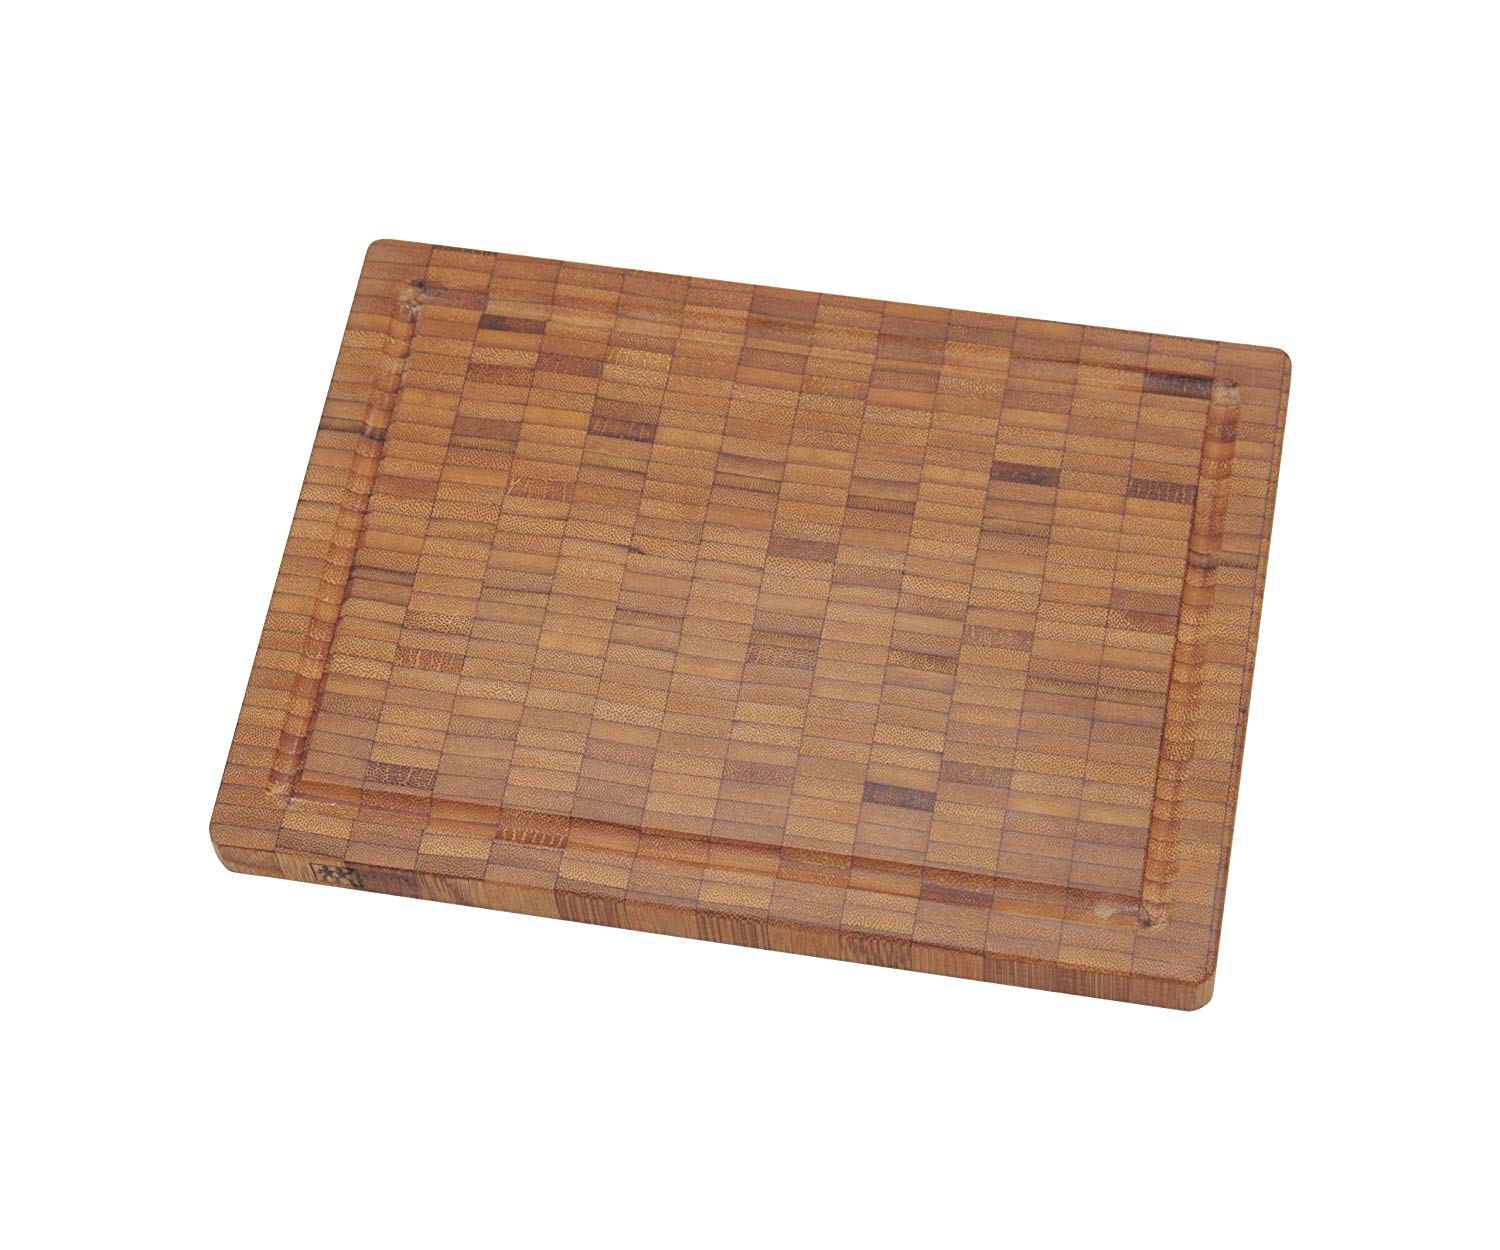 THỚT TRE ZWILLING 30772-300 (25 x 18.5 cm)